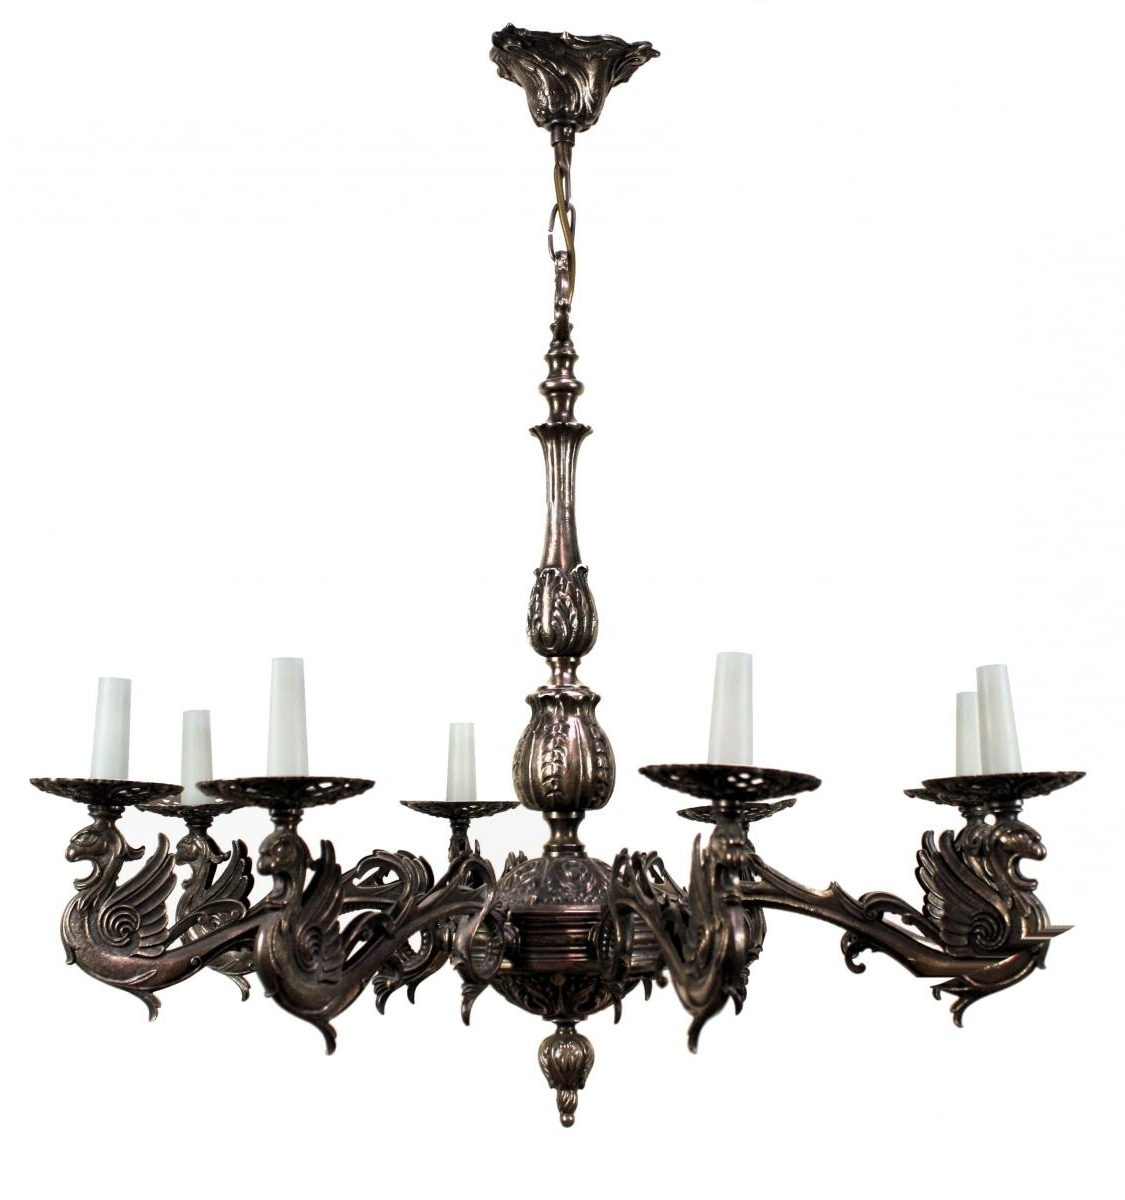 2019 French Silvered Bronze Gothic Style Chandelier, 1900S For Sale At Pamono With Regard To French Bronze Chandelier (View 2 of 20)